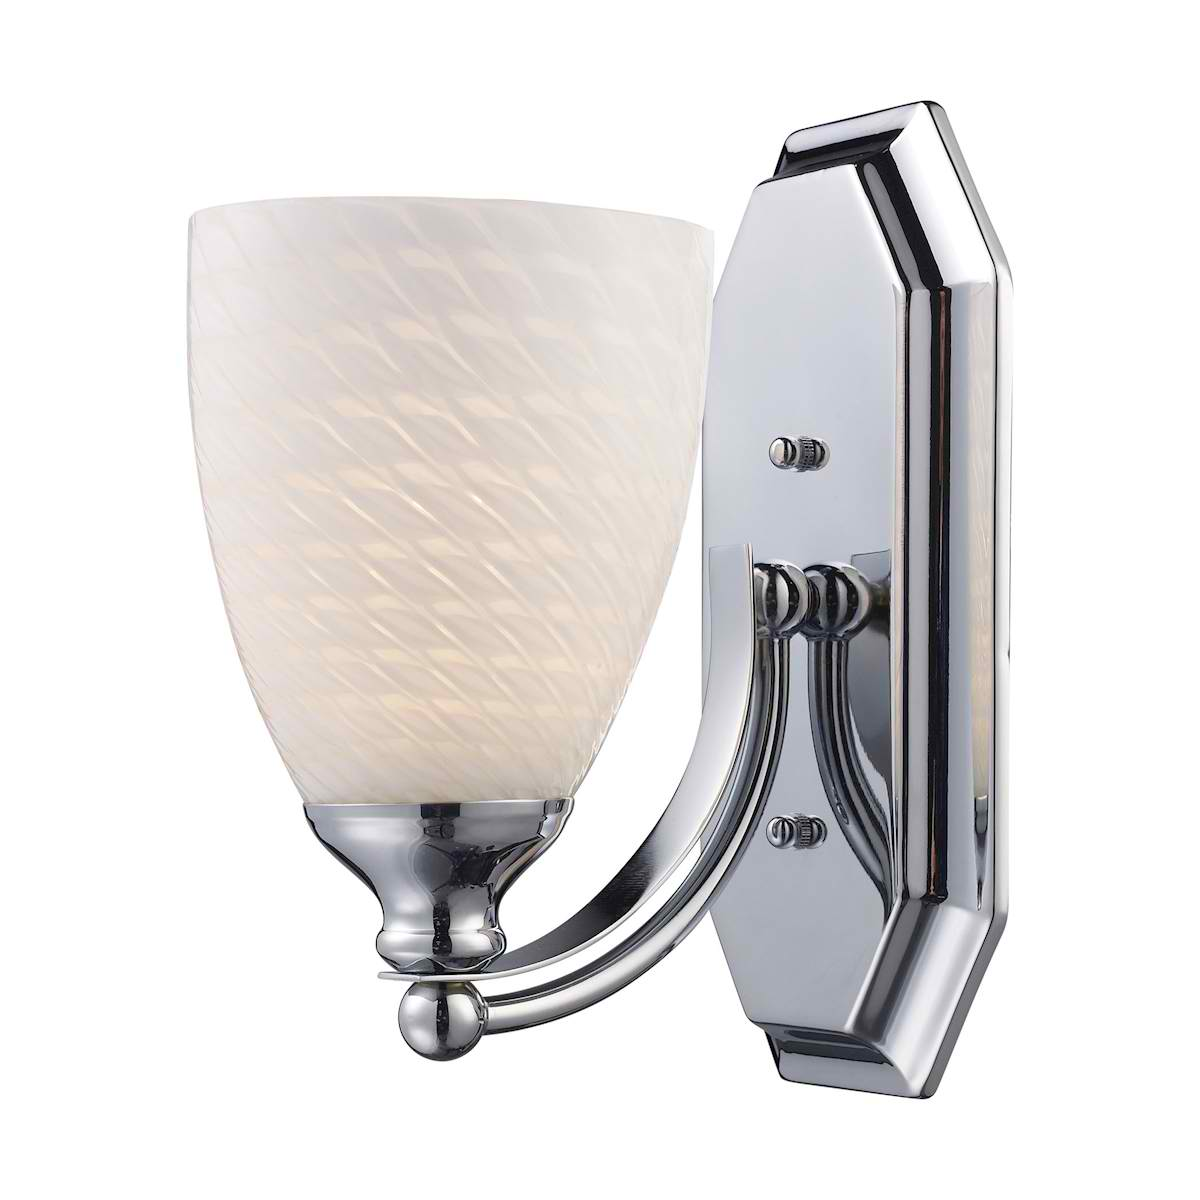 Vanity 1 Light Chrome Finish Complete with White Swirl Glass